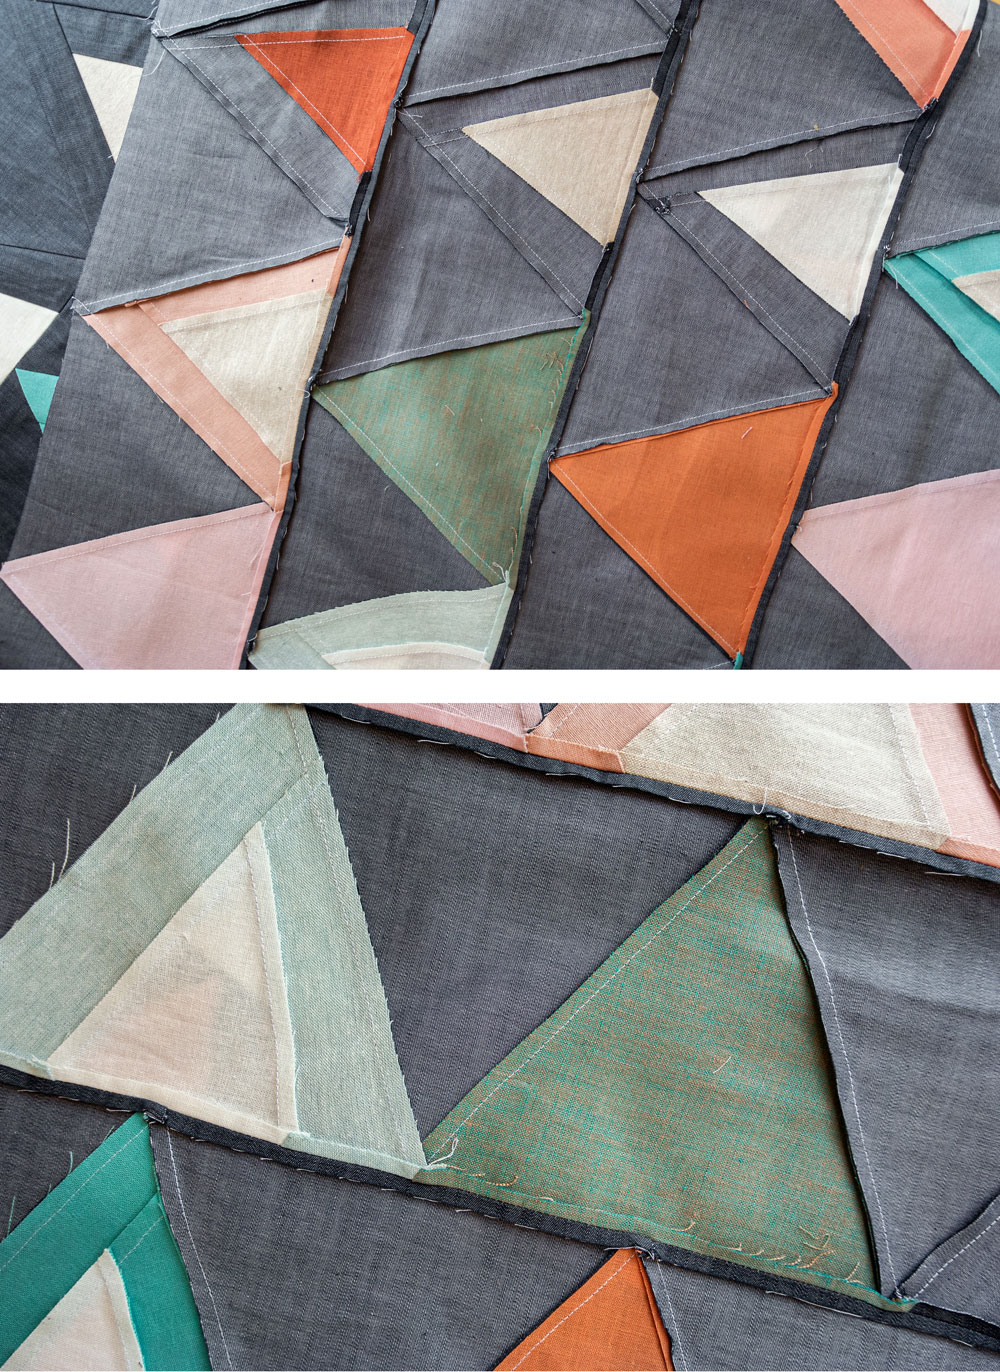 Tips and video tutorials on how to quilt with triangle blocks for the Perennial Quilt by Suzy Quilts | suzyquilts.com